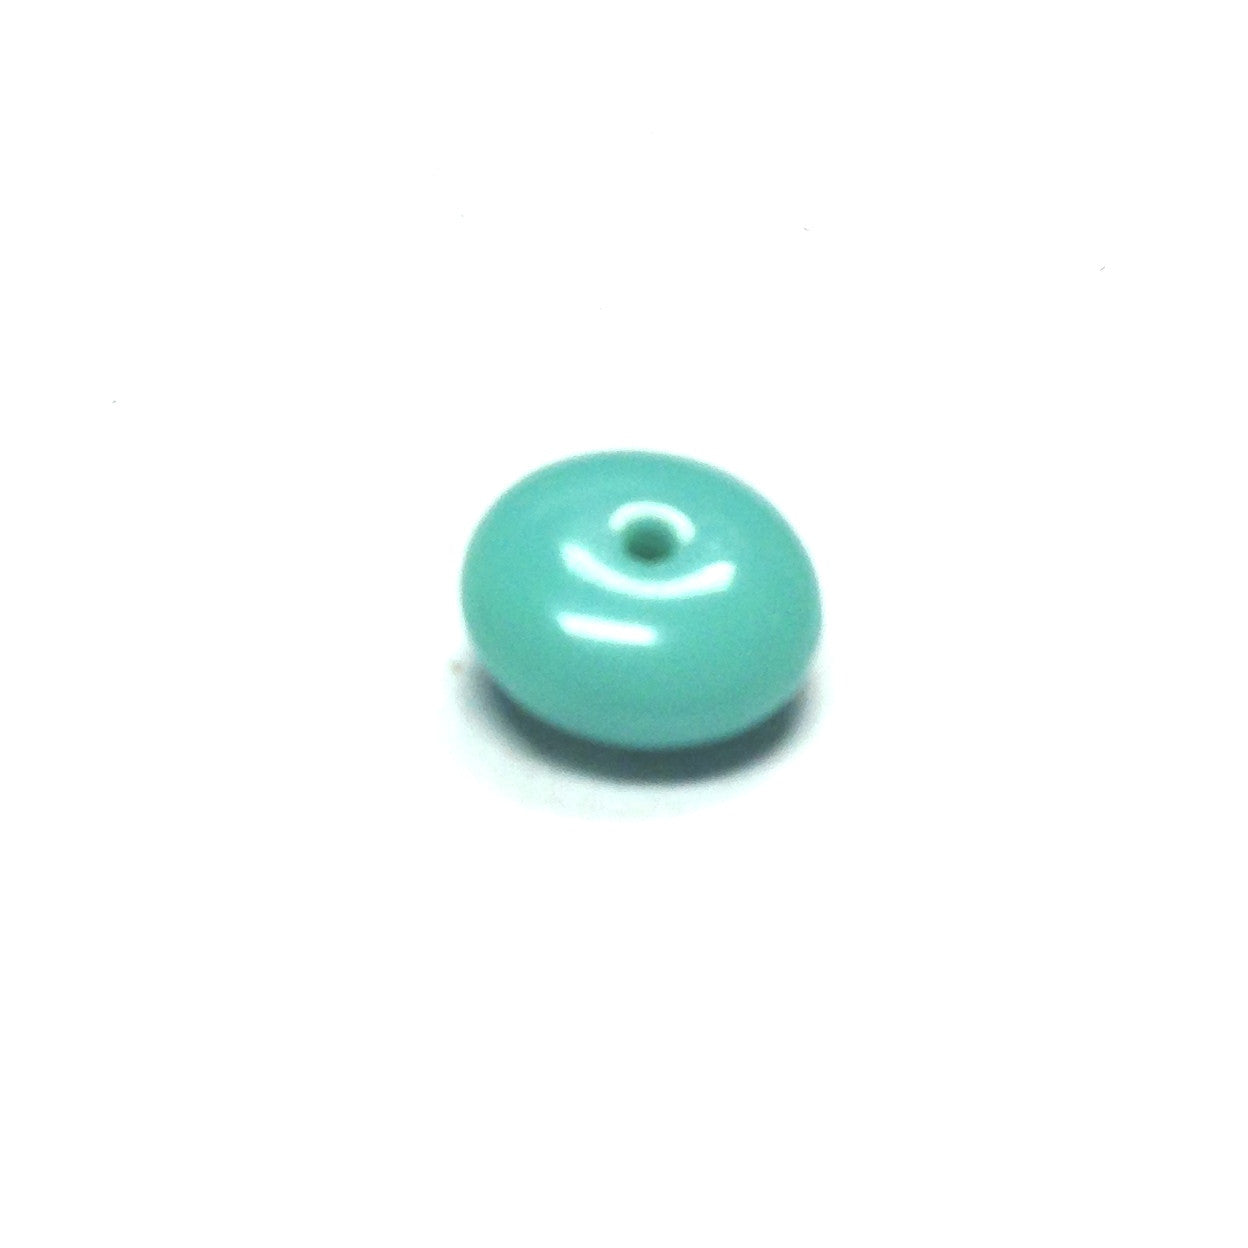 8MM Green Turq Glass Rondel Bead (200 pieces)